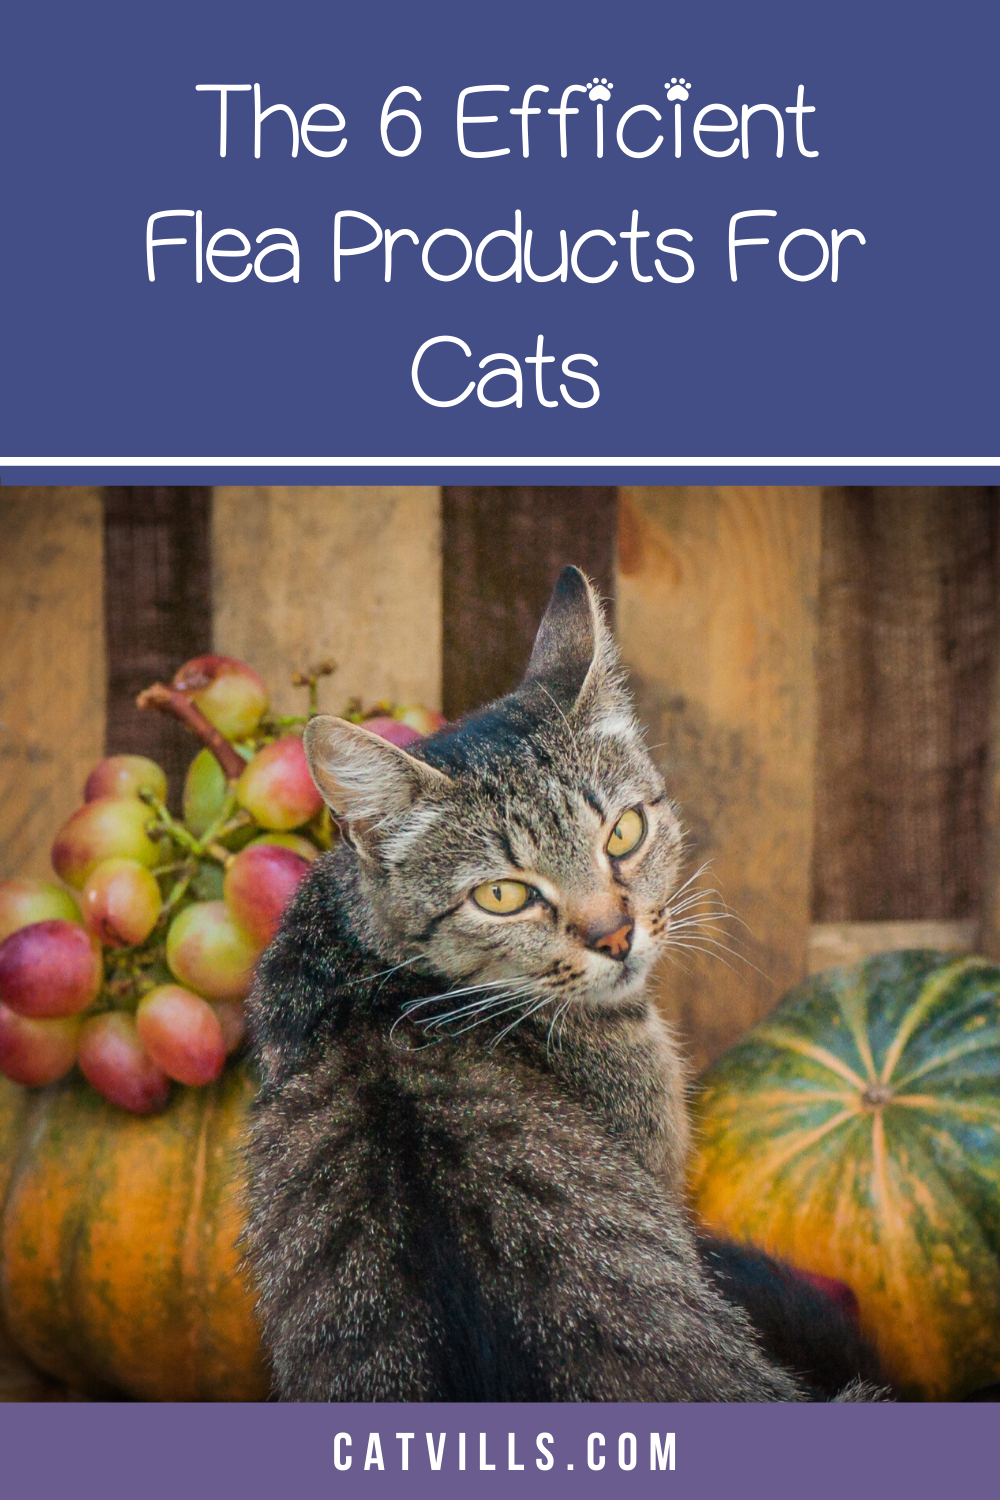 The Best Flea Tick And Heartworm Prevention Products Aren T Just Something You Need To Cons In 2020 Heartworm Prevention Cat Fleas Treatment Heartworm Prevention Cats